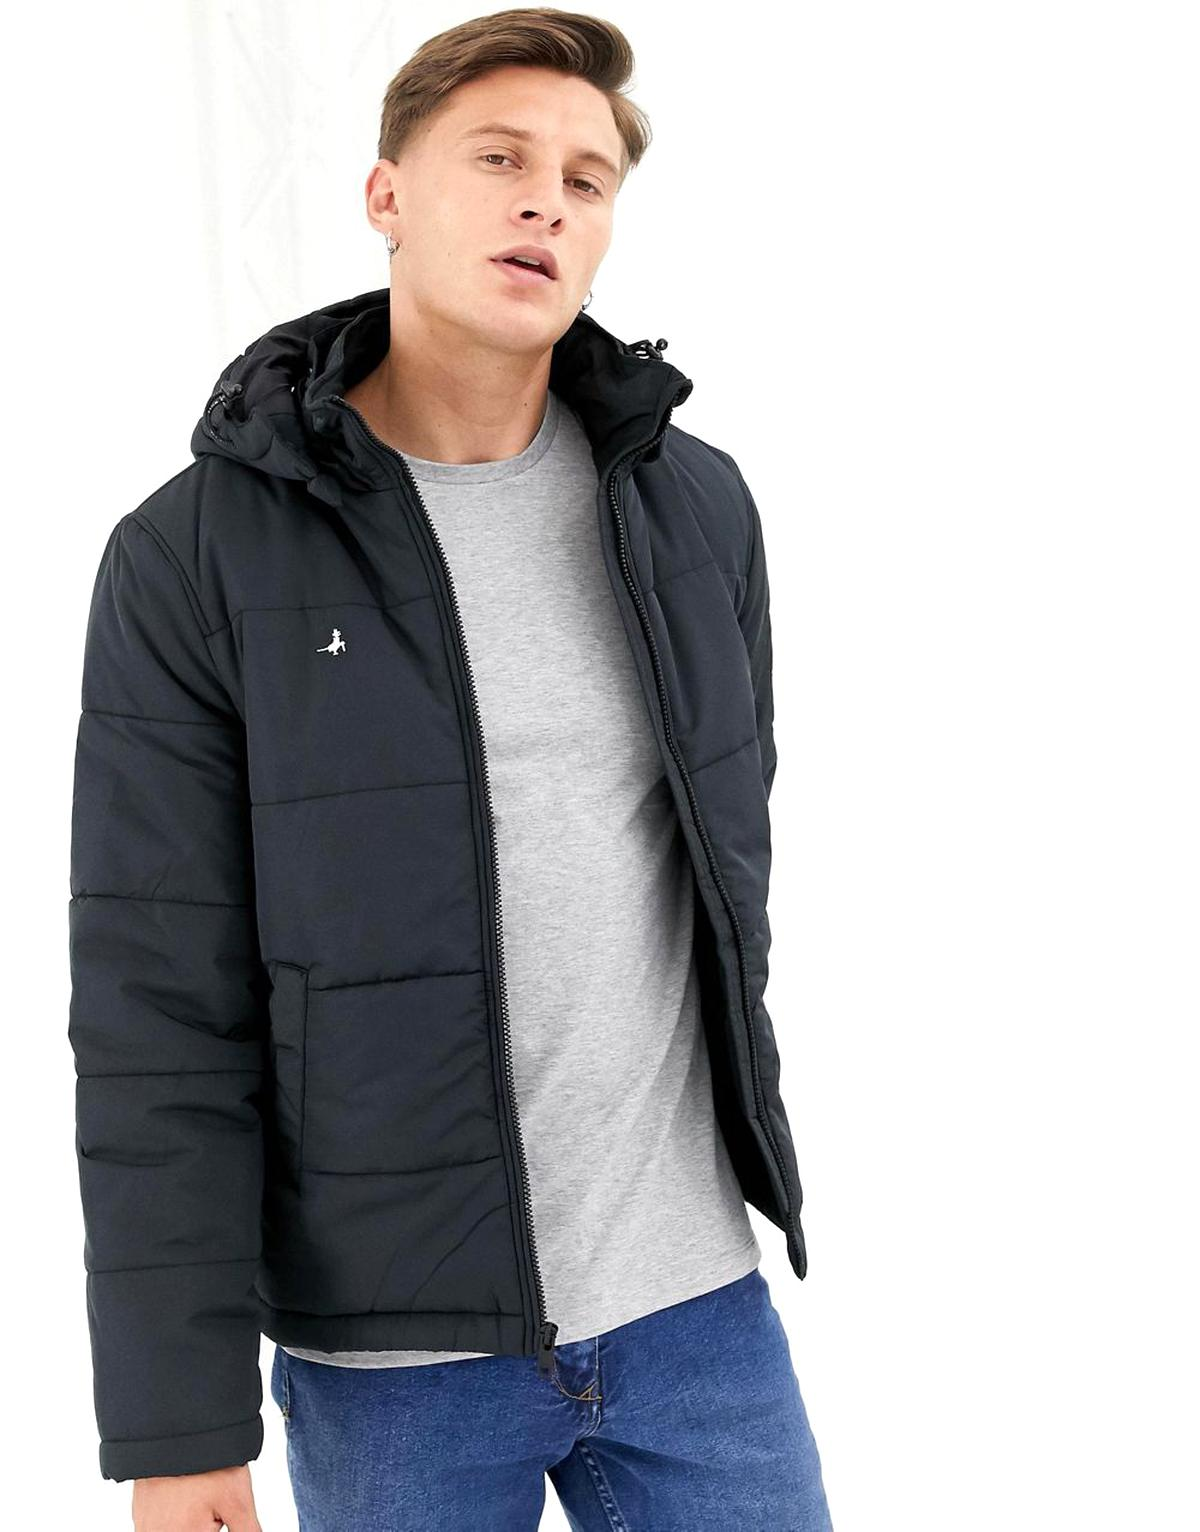 jack wills jacket for sale